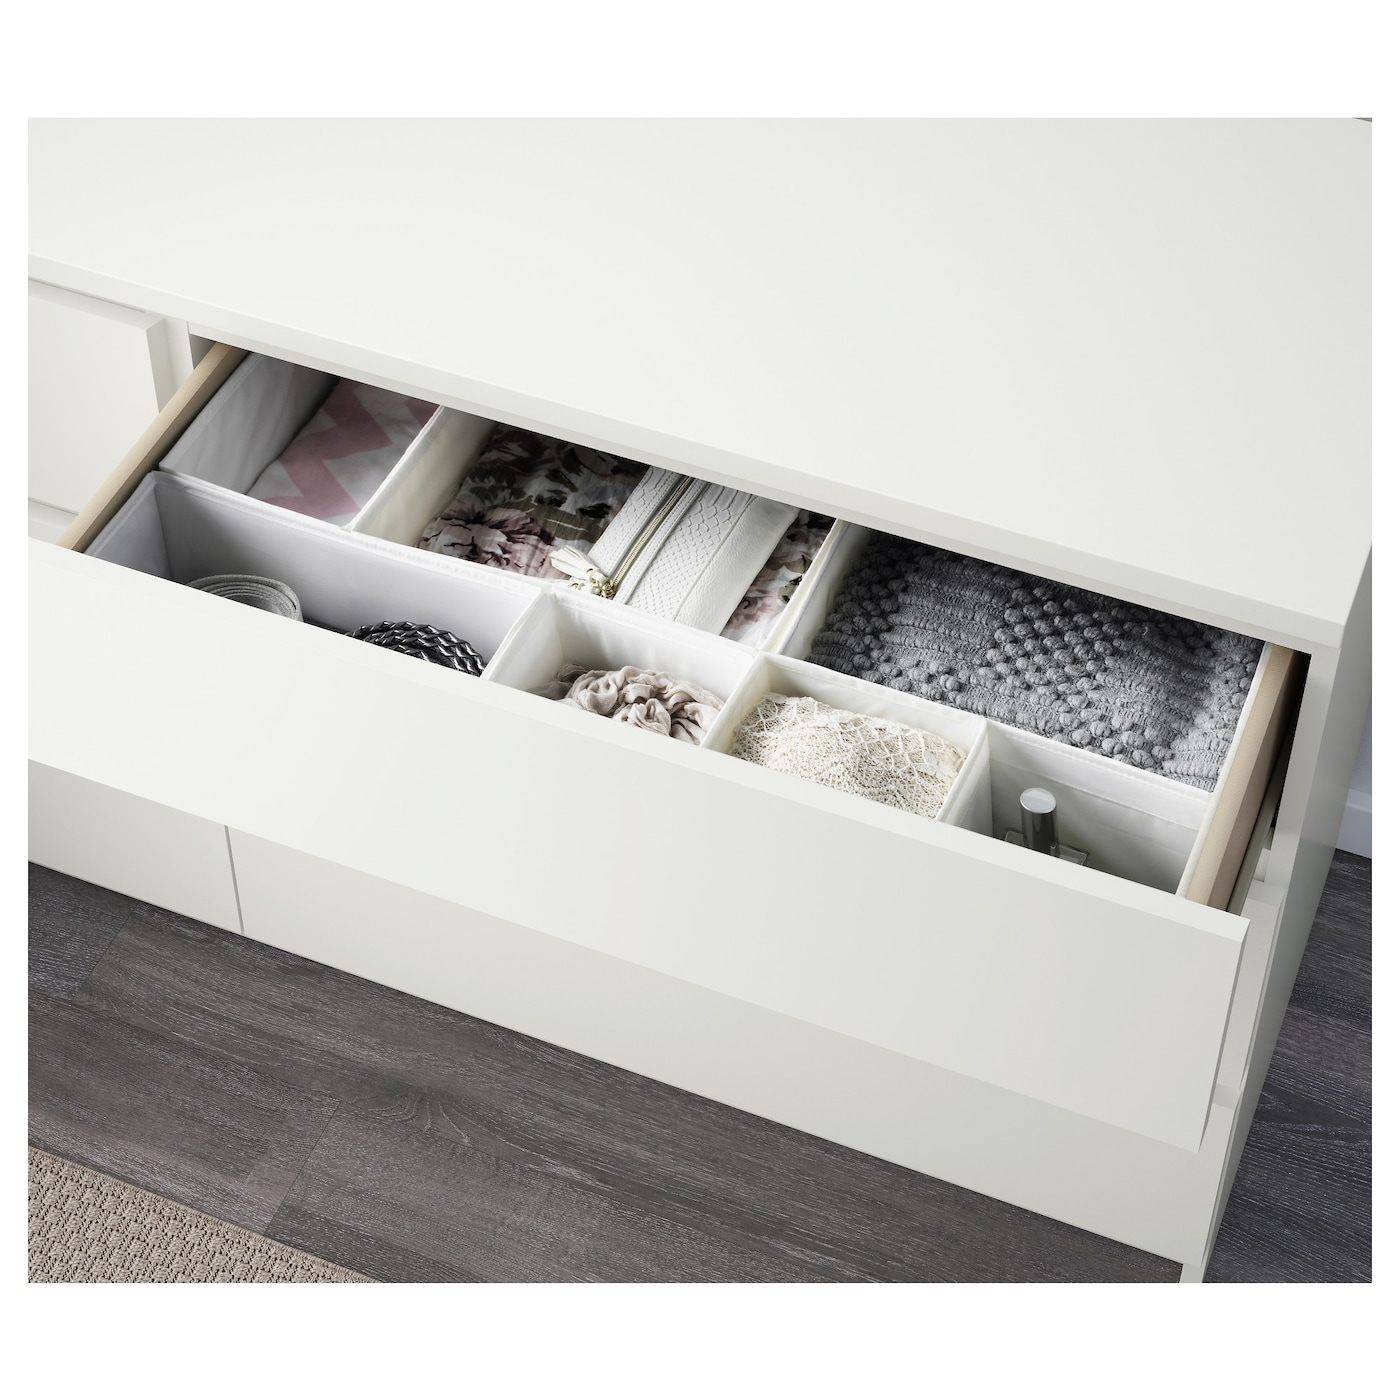 Malm Chest Of 6 Drawers White 160x78 Cm Ikea